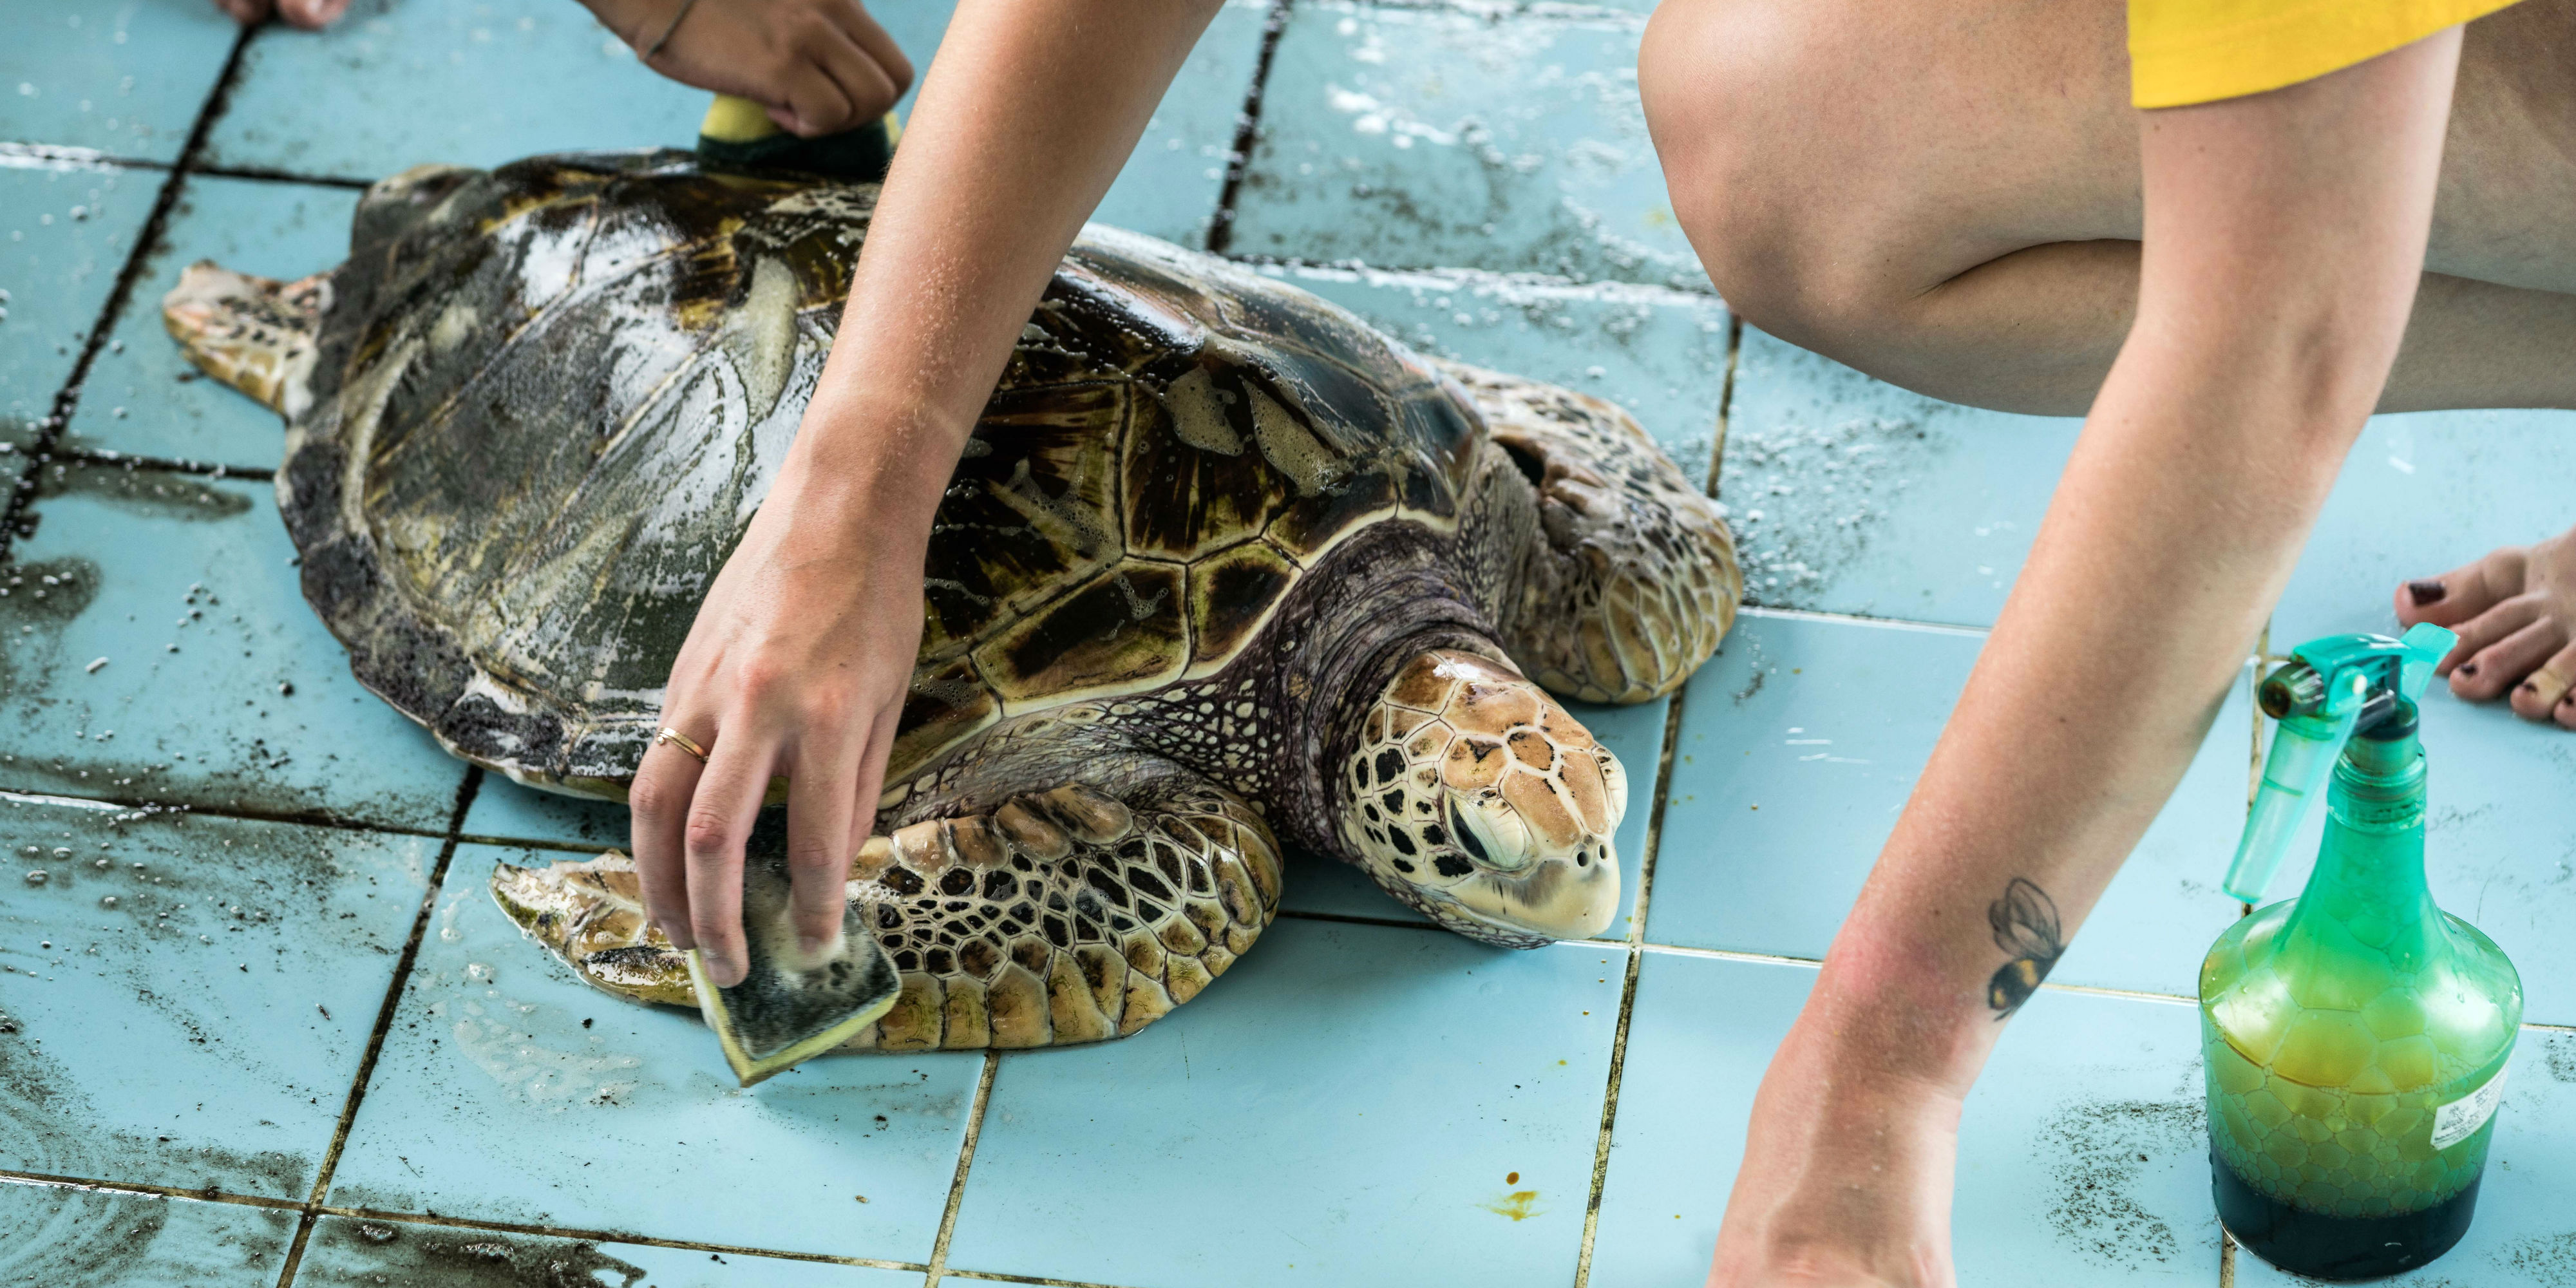 A GVI participant cleans and disinfects an endangered hawksbill turtle as part of one of GVI's sea turtle volunteer programs.